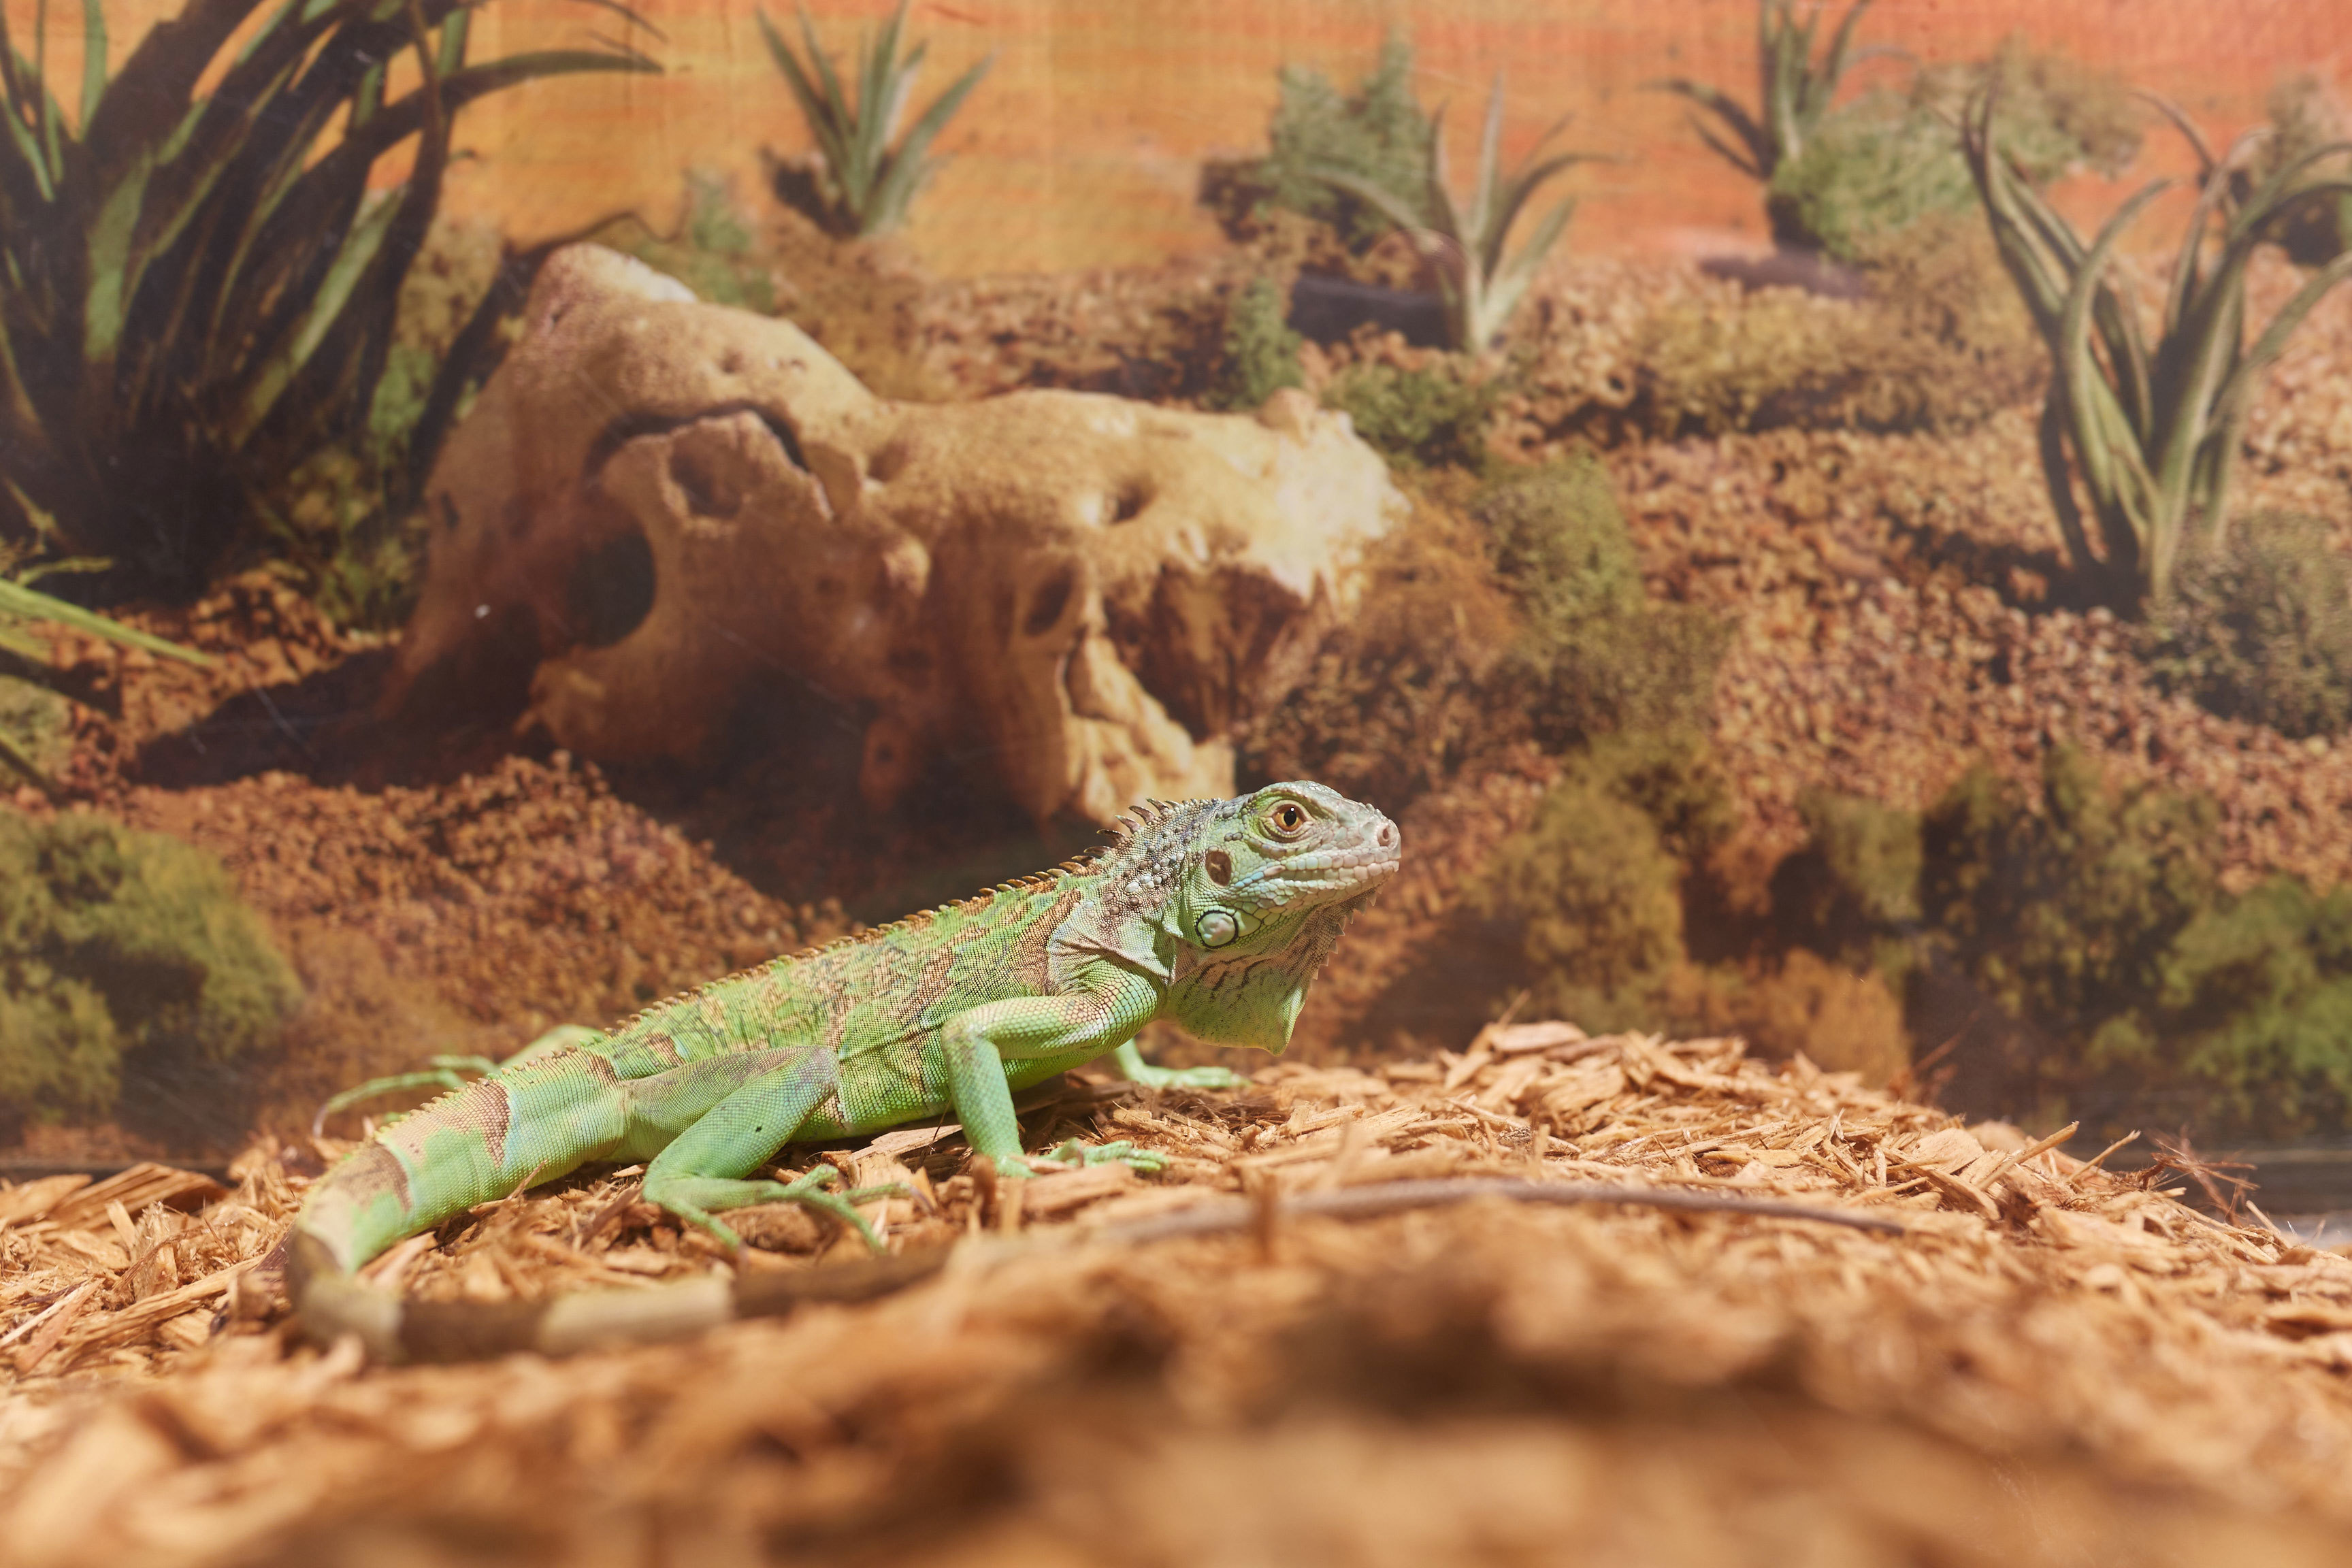 My Pilgrimage to the Reptile Expo, a Bleak Haven for Lizard People